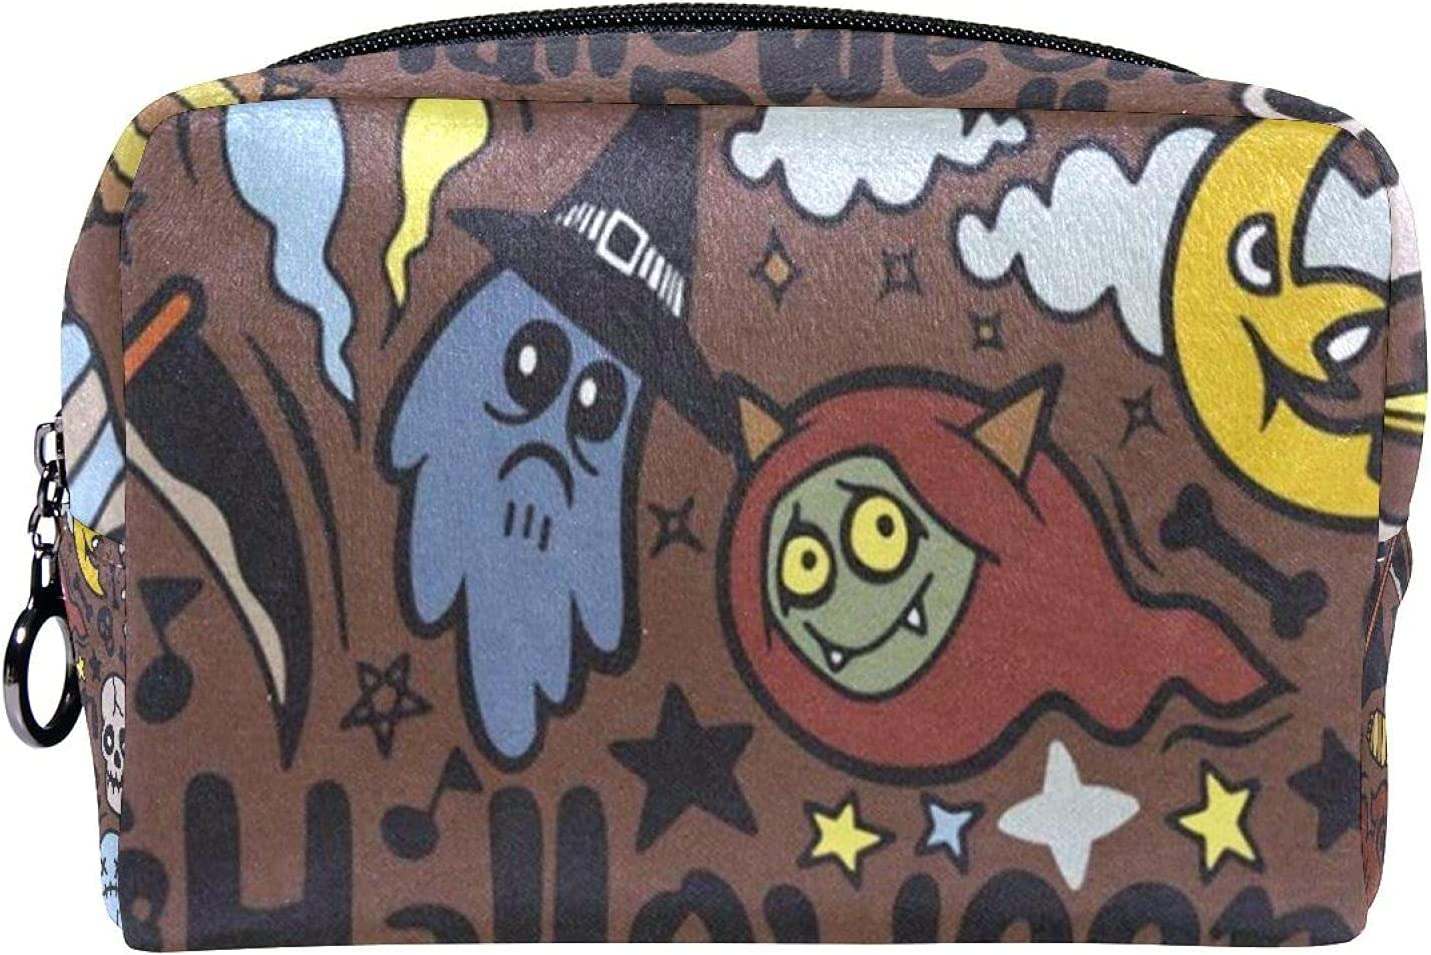 Compact Cosmetic Bag Makeup Coin vampi Ranking TOP13 purse Trust with halloween